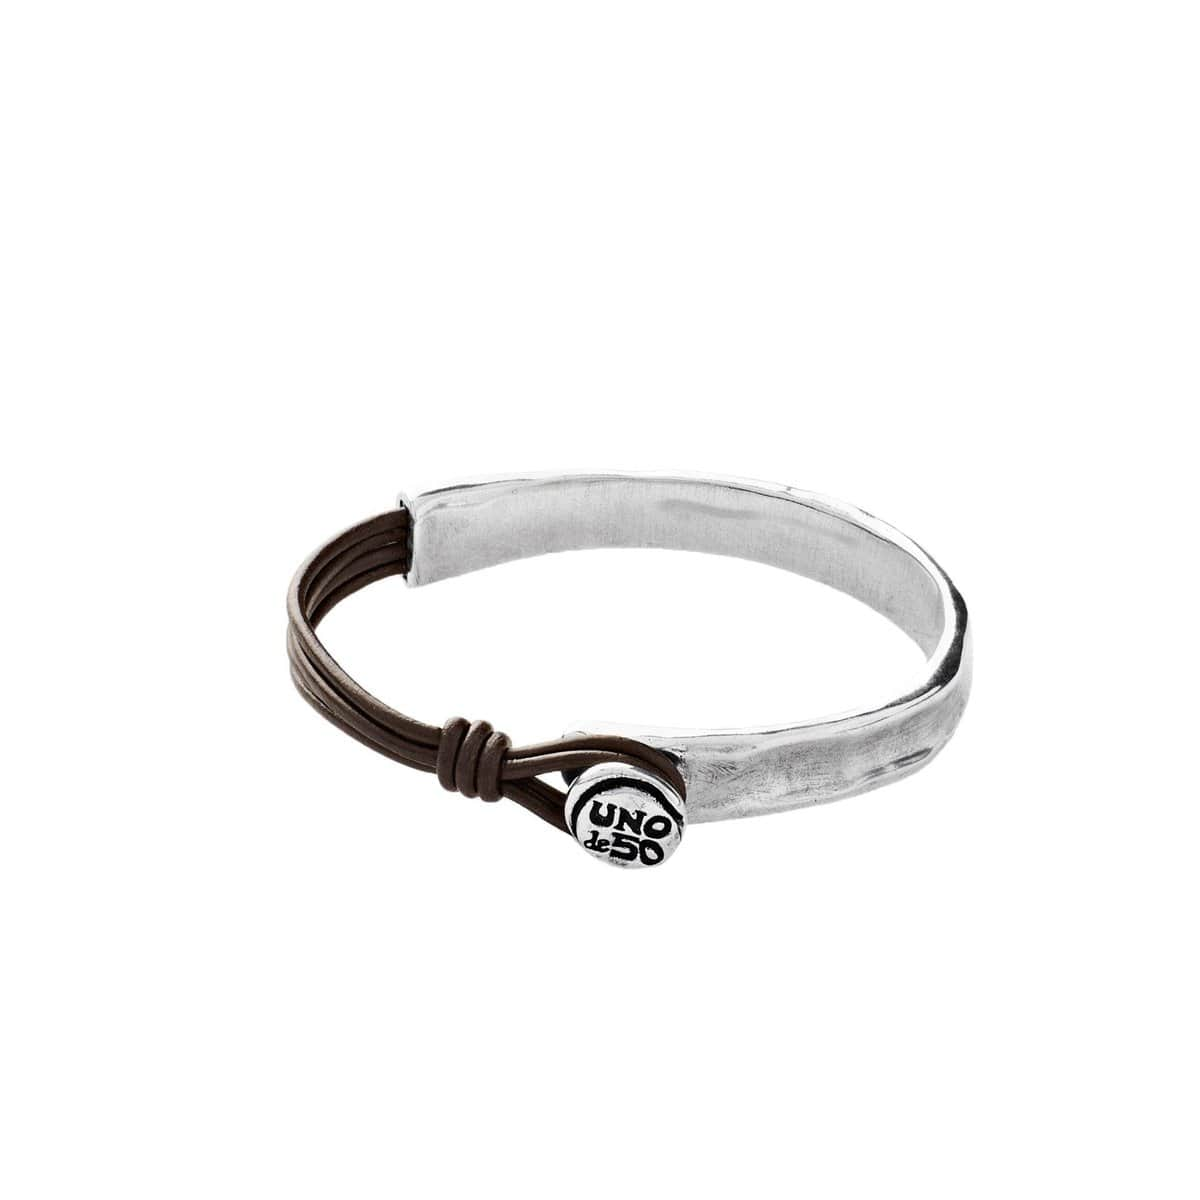 Up Here Bracelet - PUL1608MARMTL0L